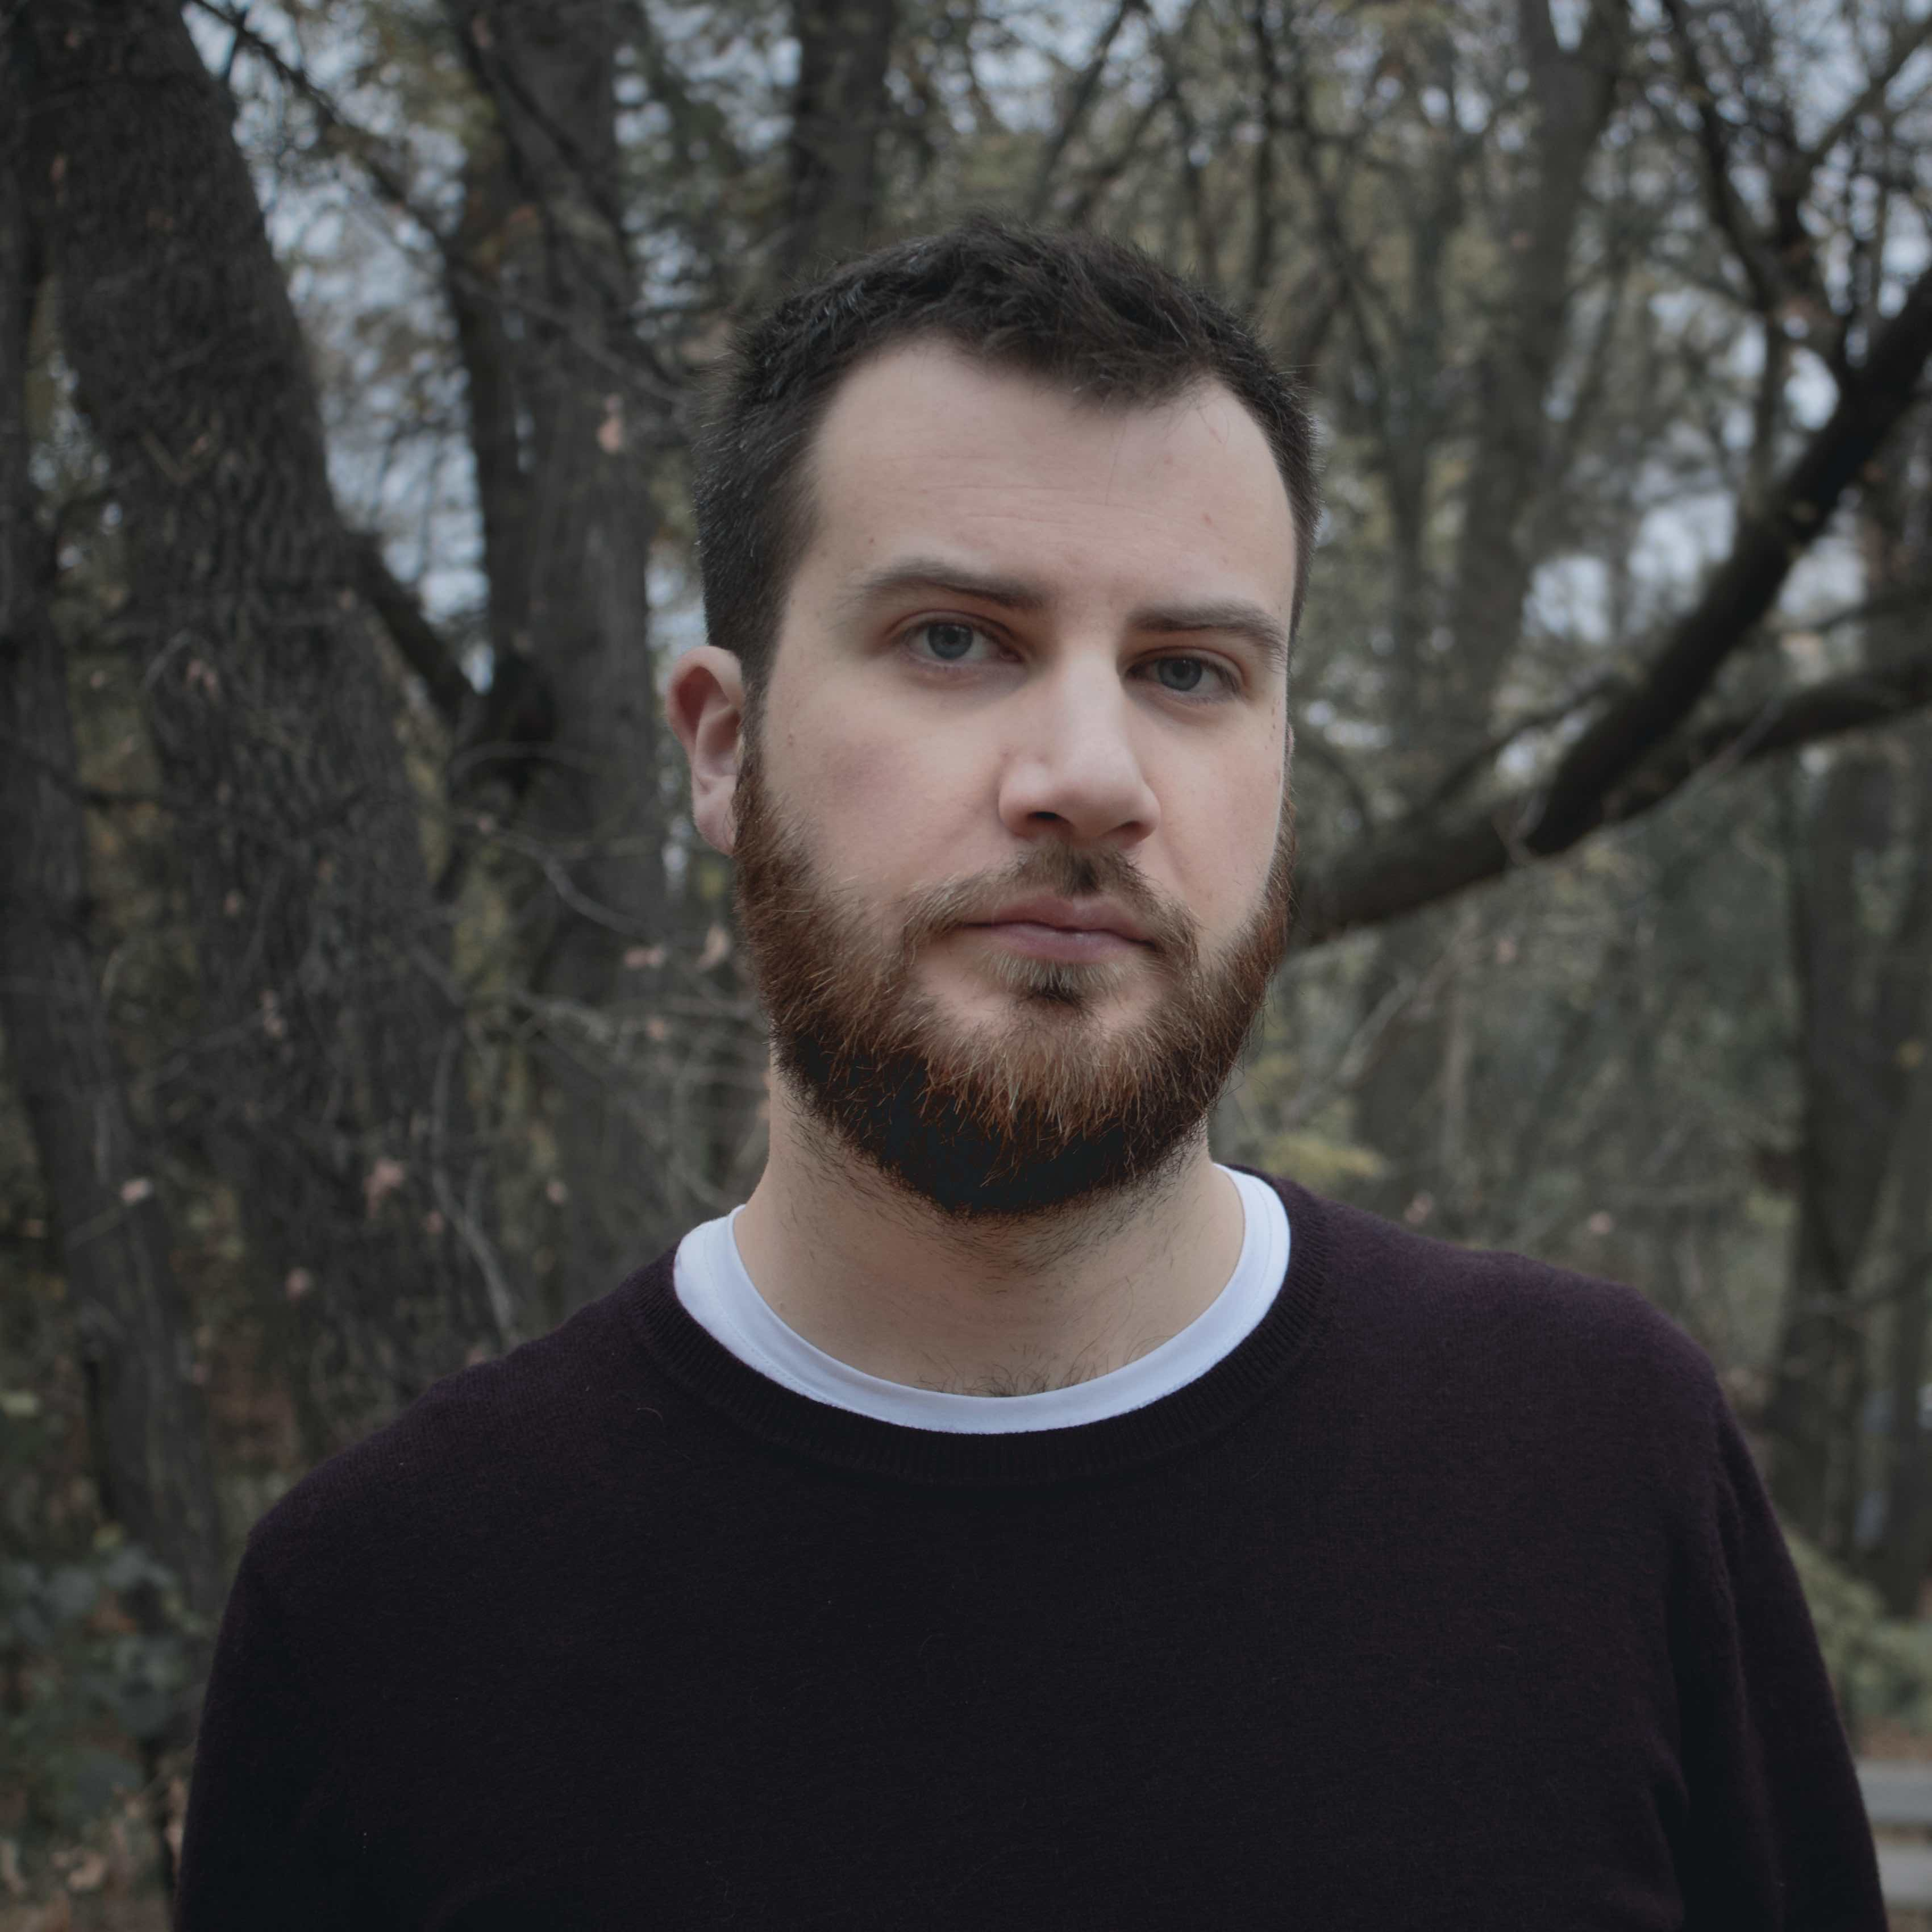 'Winnipeg Composer Justin Delorme Joins Core Music Agency' core news picture